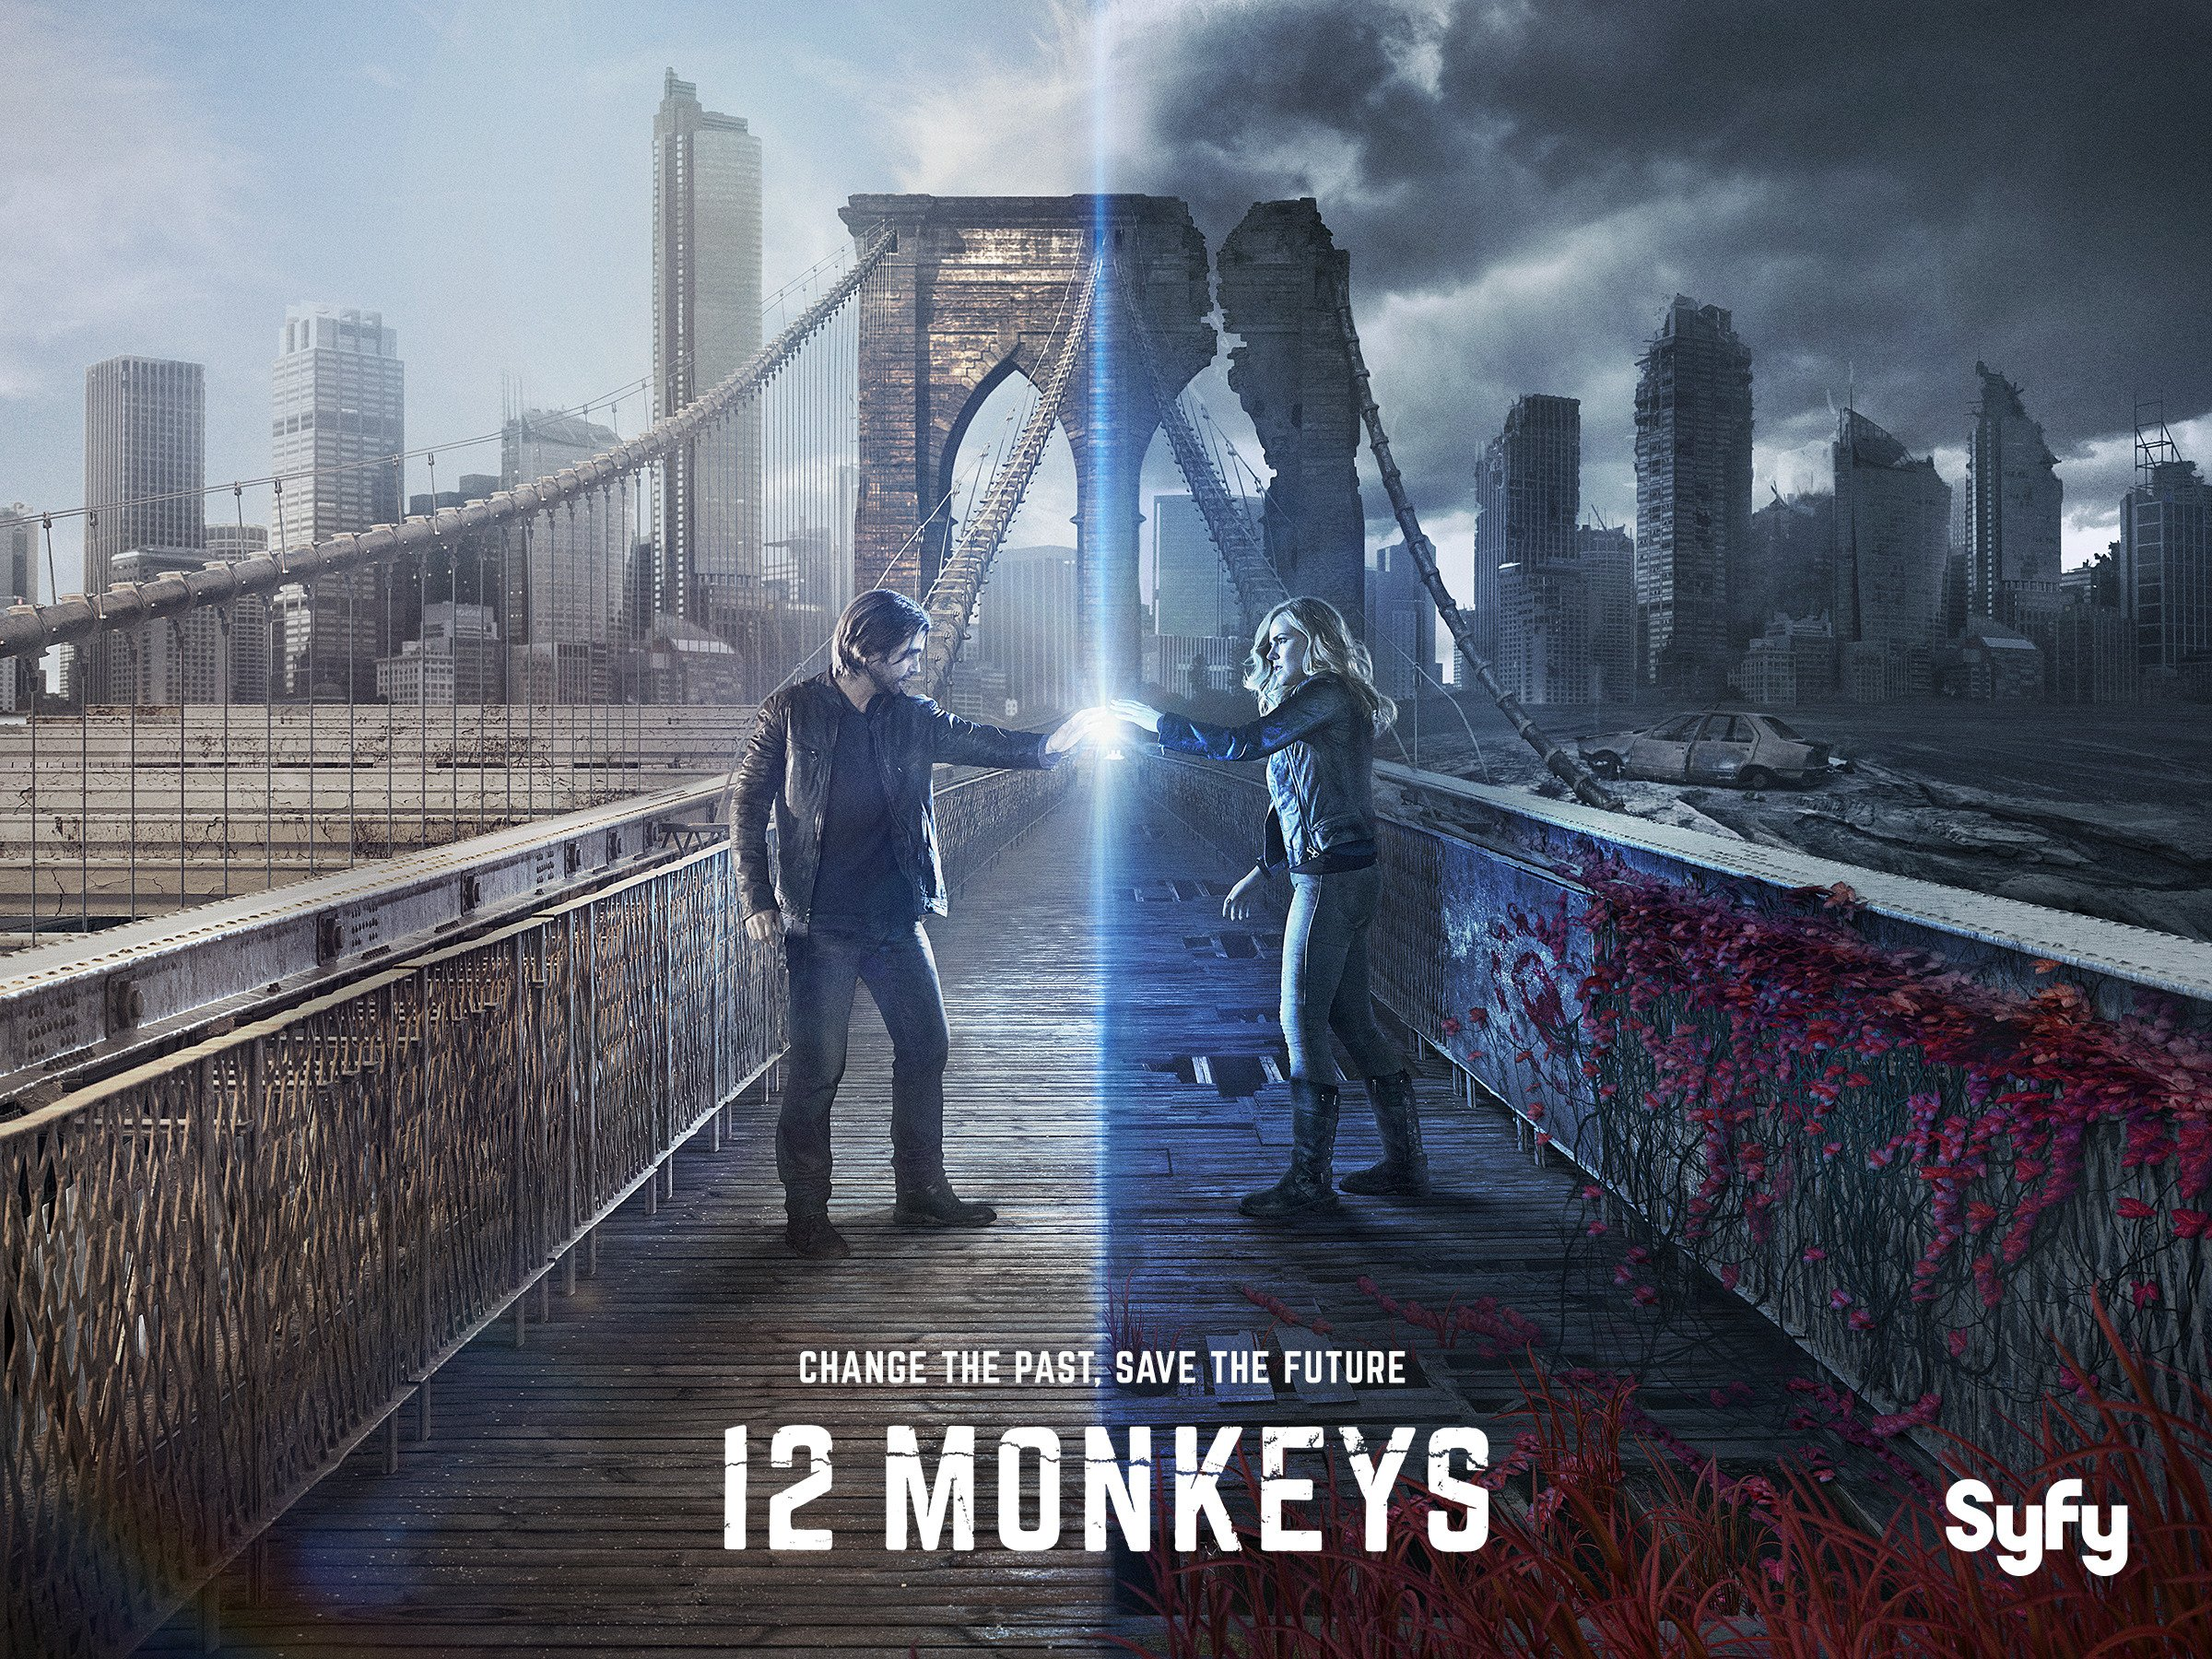 12 Monkeys, Season 2 - Season 2